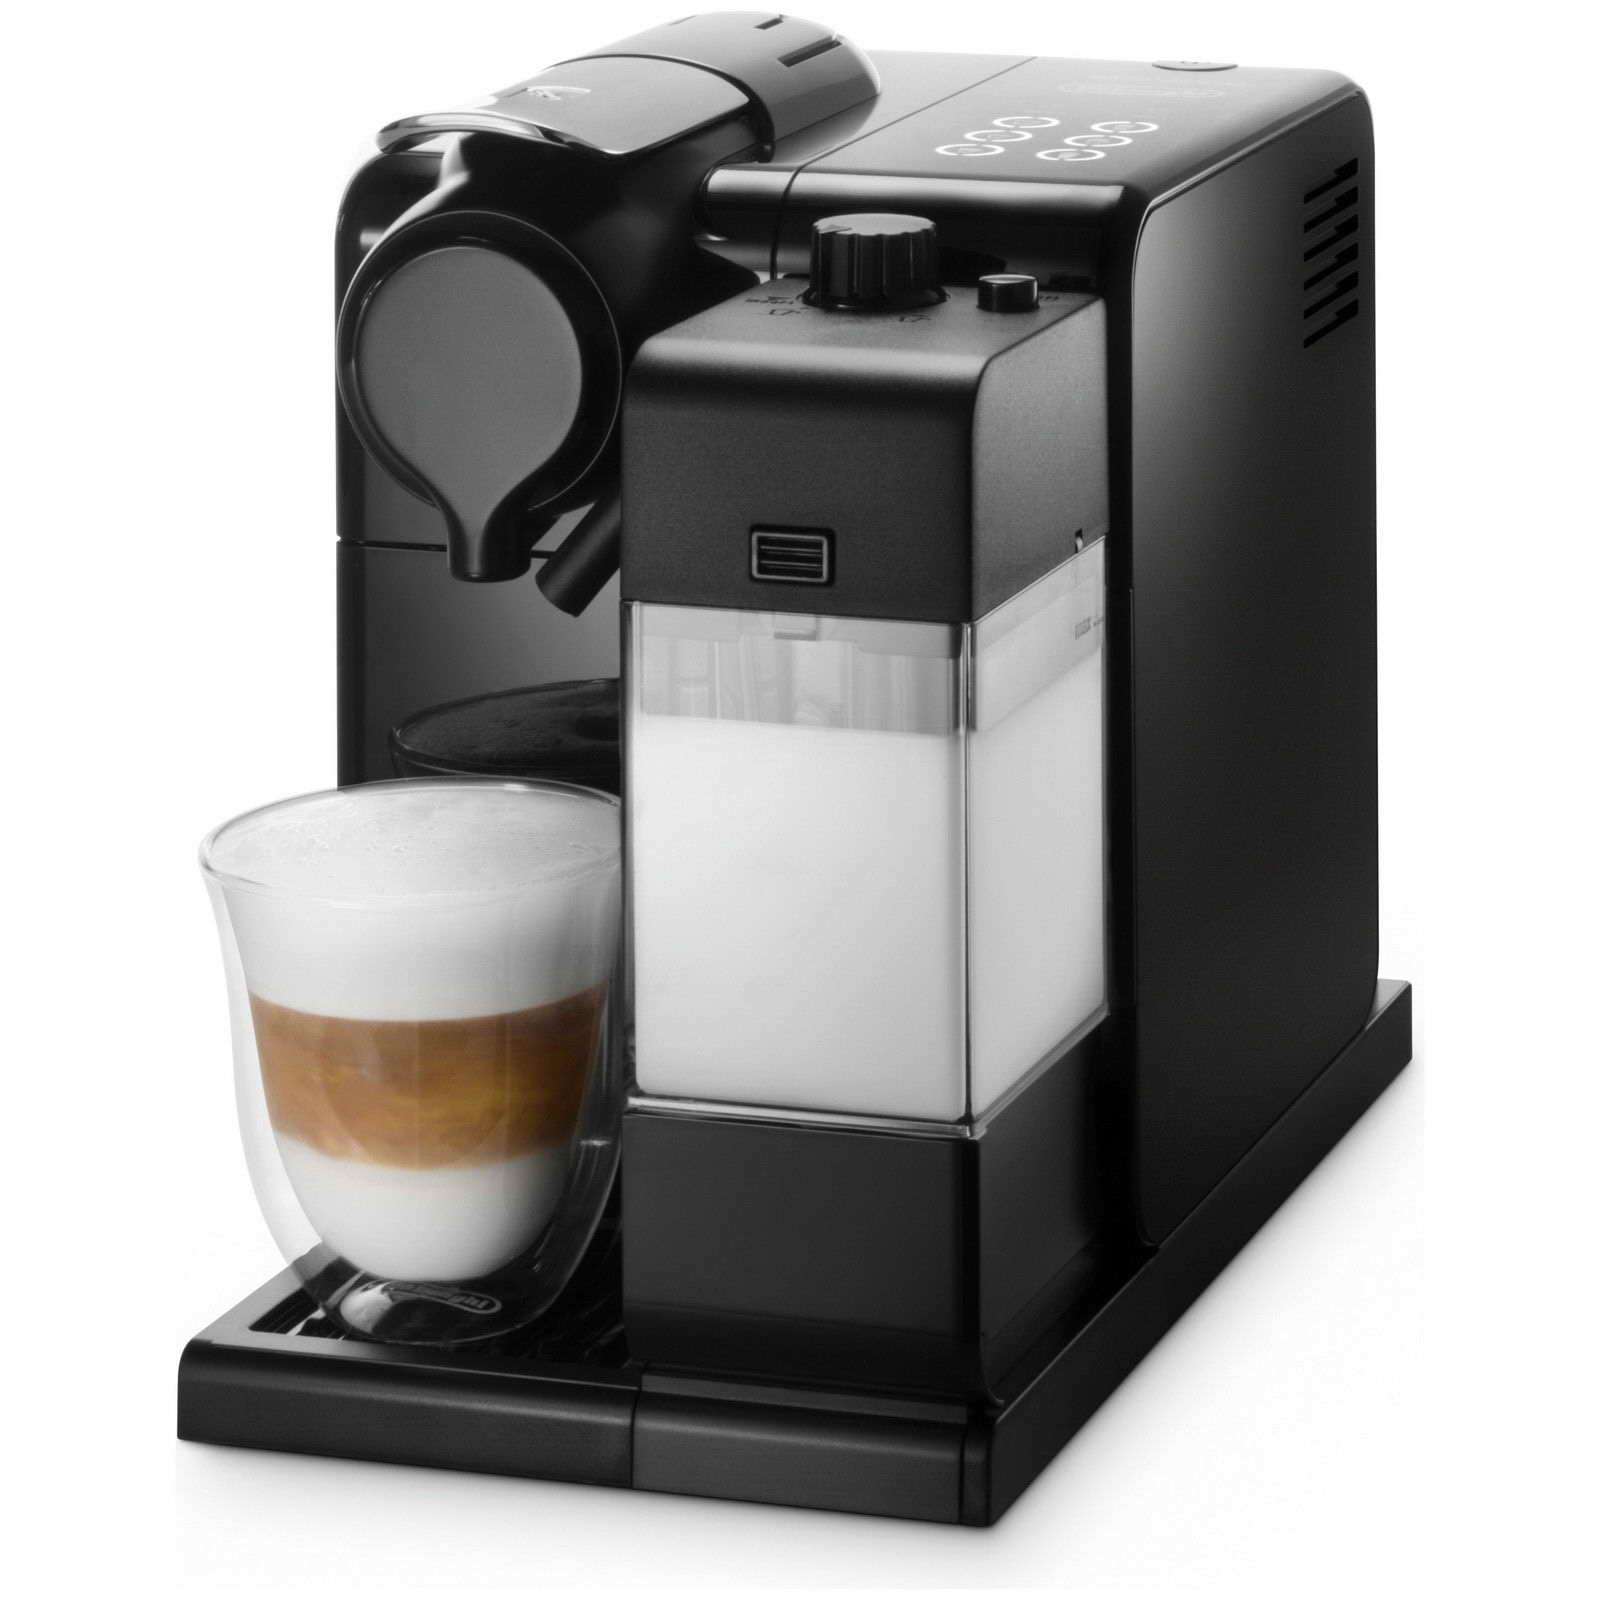 delonghi nespresso latissma espresso cappuccino machine. Black Bedroom Furniture Sets. Home Design Ideas